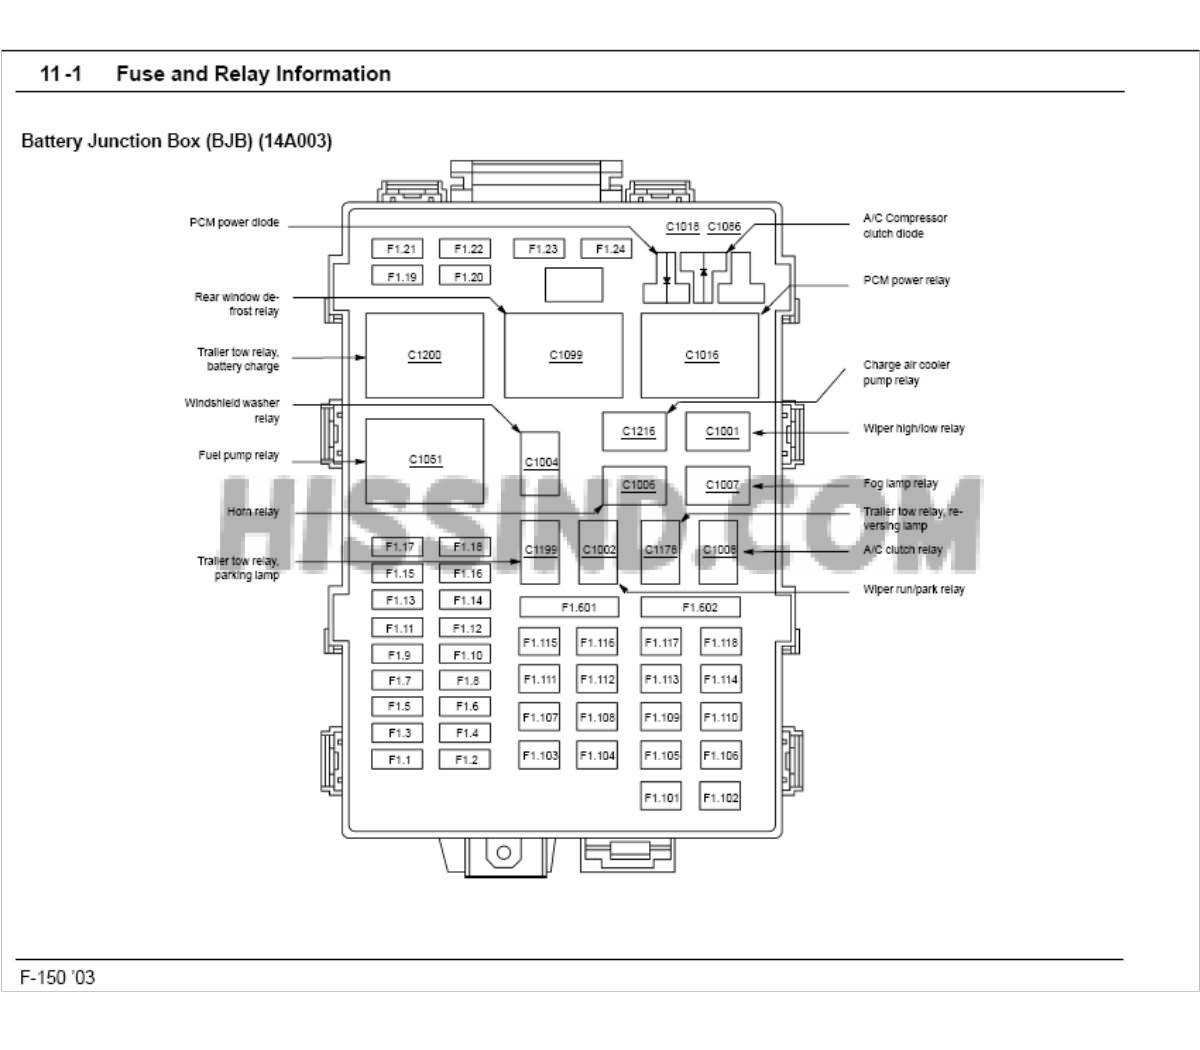 fuse box location 1978 ford 150 2000    ford    f150    fuse       box    diagram engine bay  2000    ford    f150    fuse       box    diagram engine bay